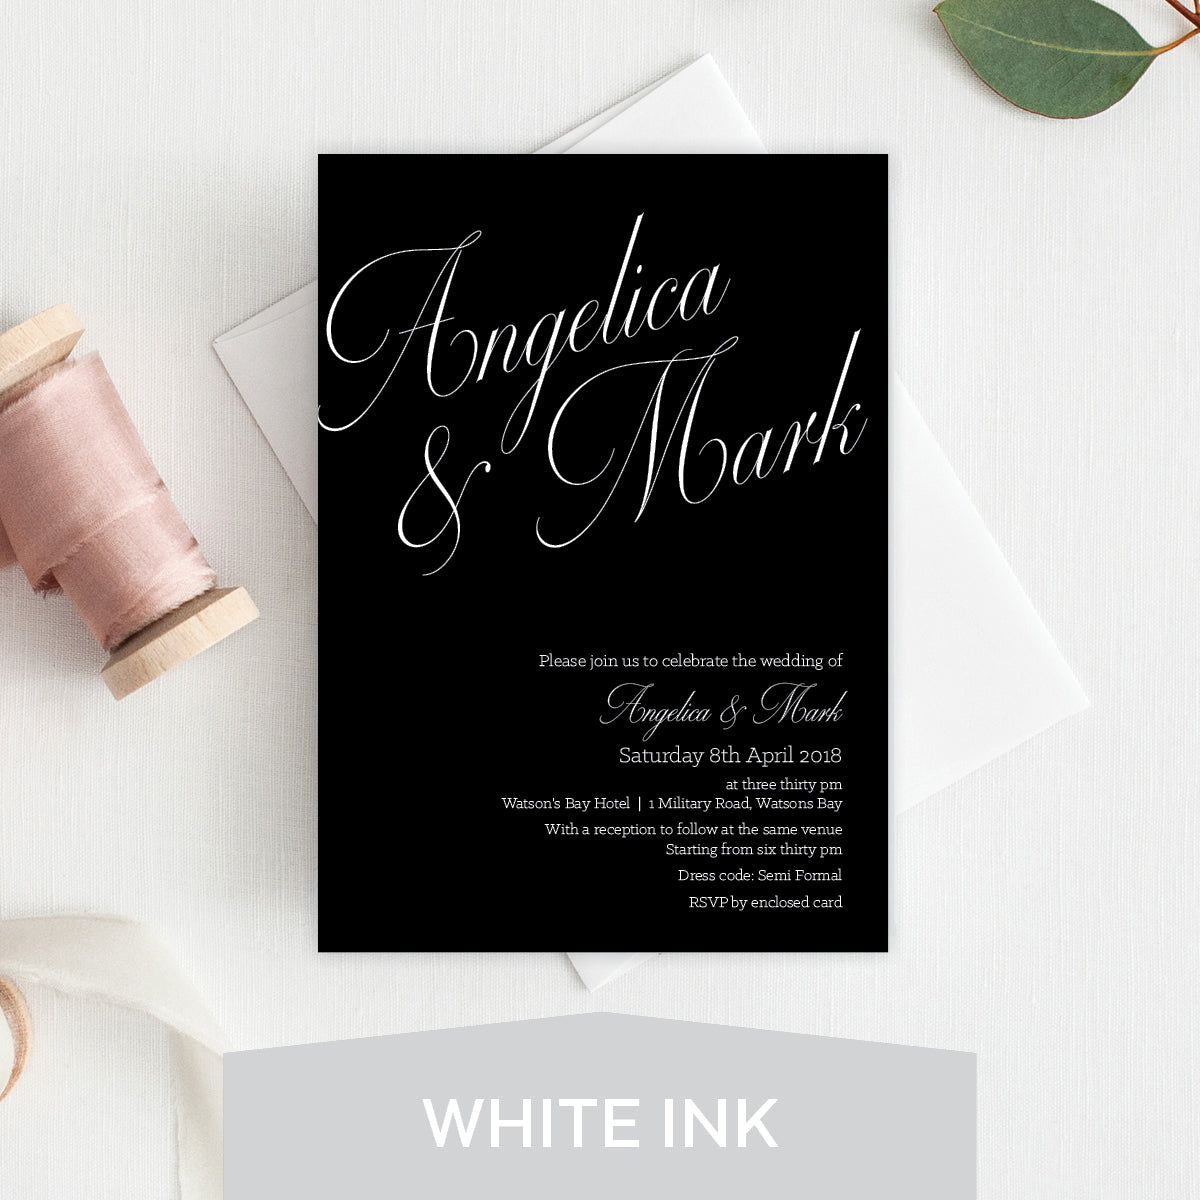 So Sweet White Ink Invitation